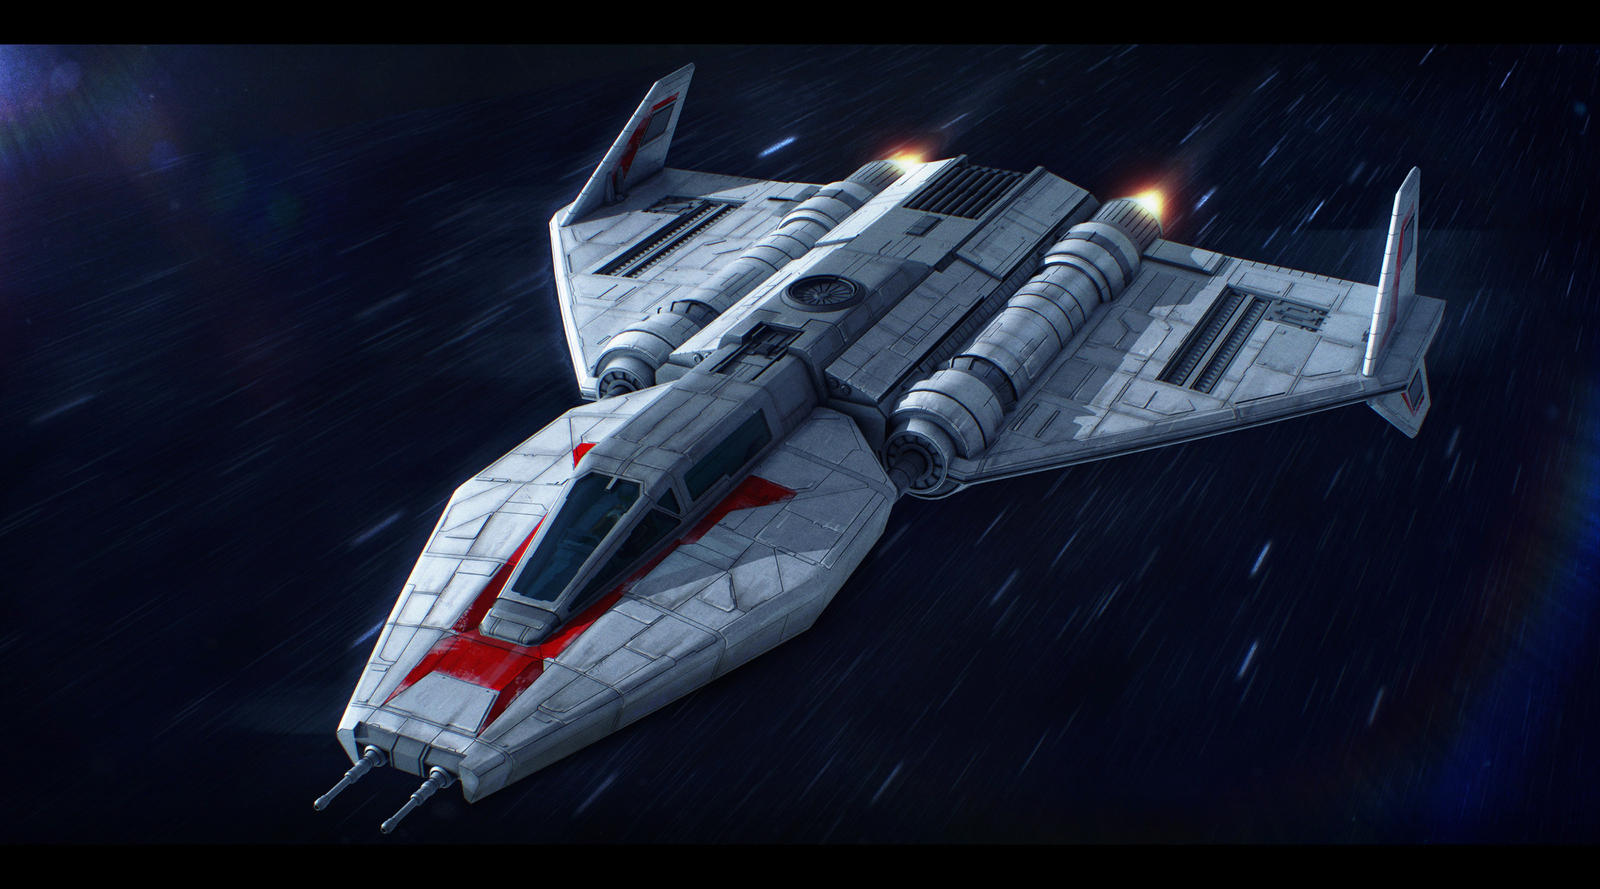 Star Wars Toscan 8-Q Fighter